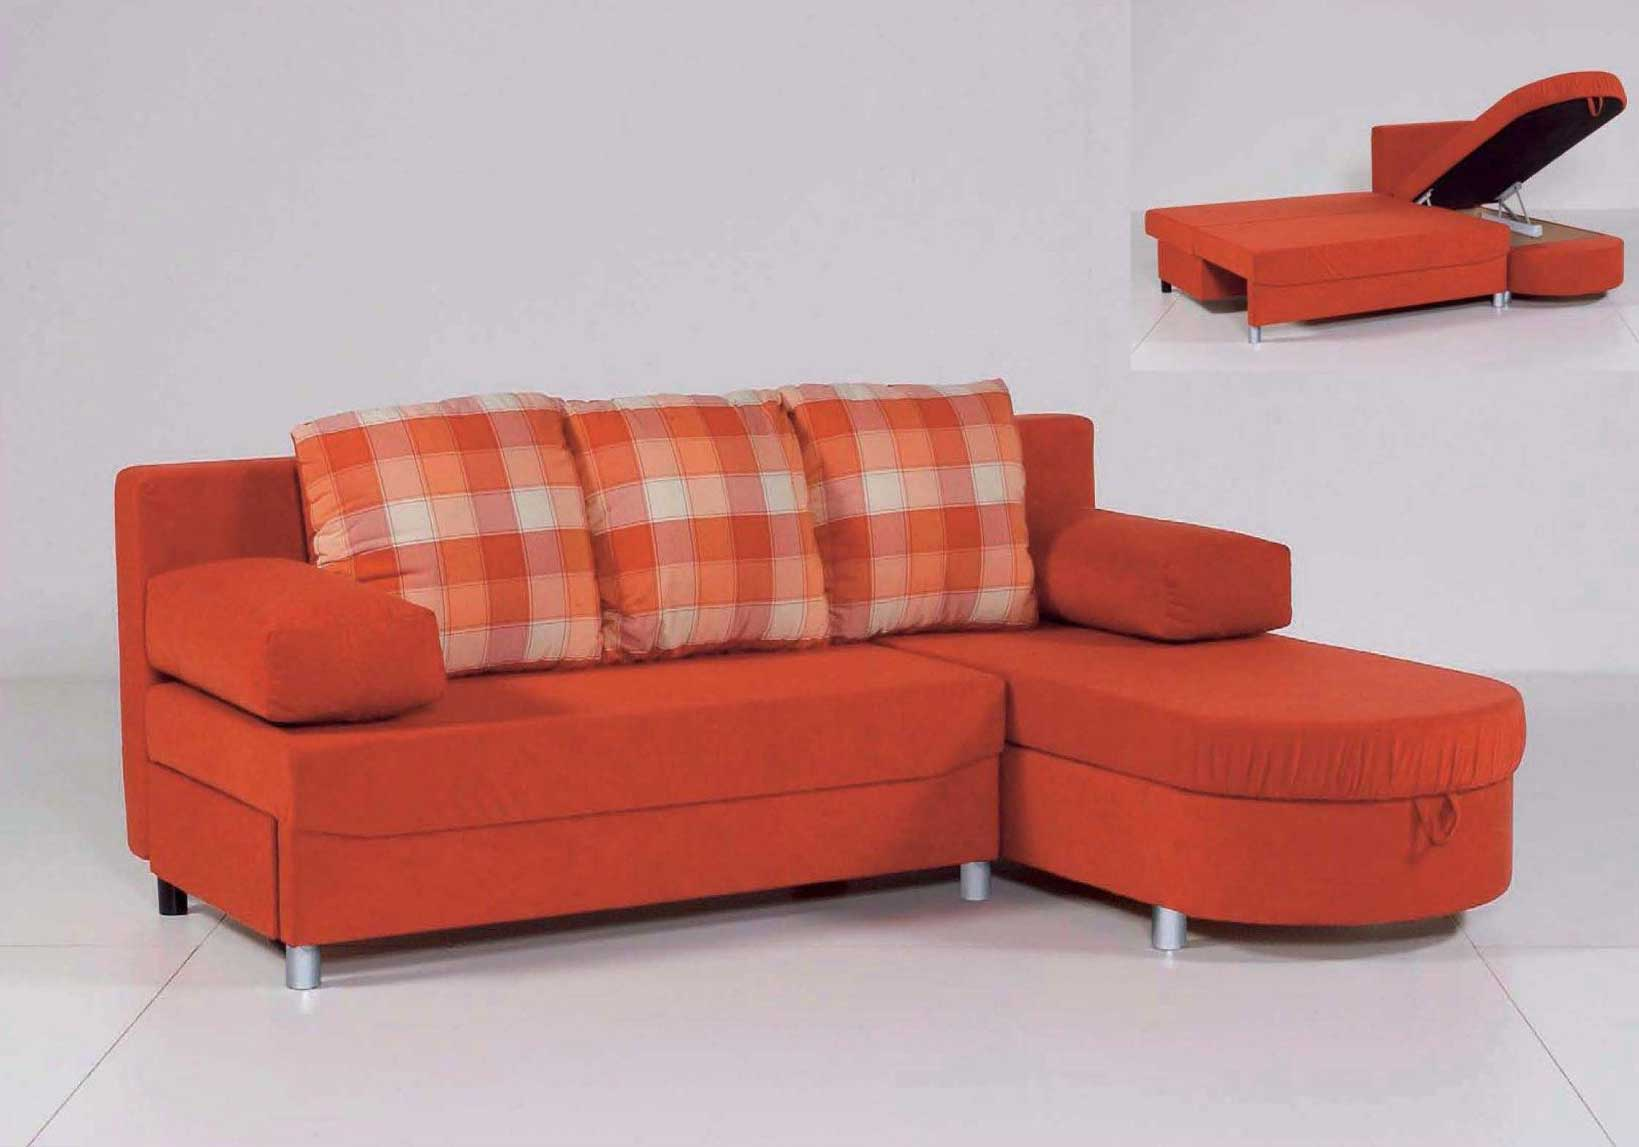 Sleeper sofas by best chair Couches that turn into bunk beds for sale